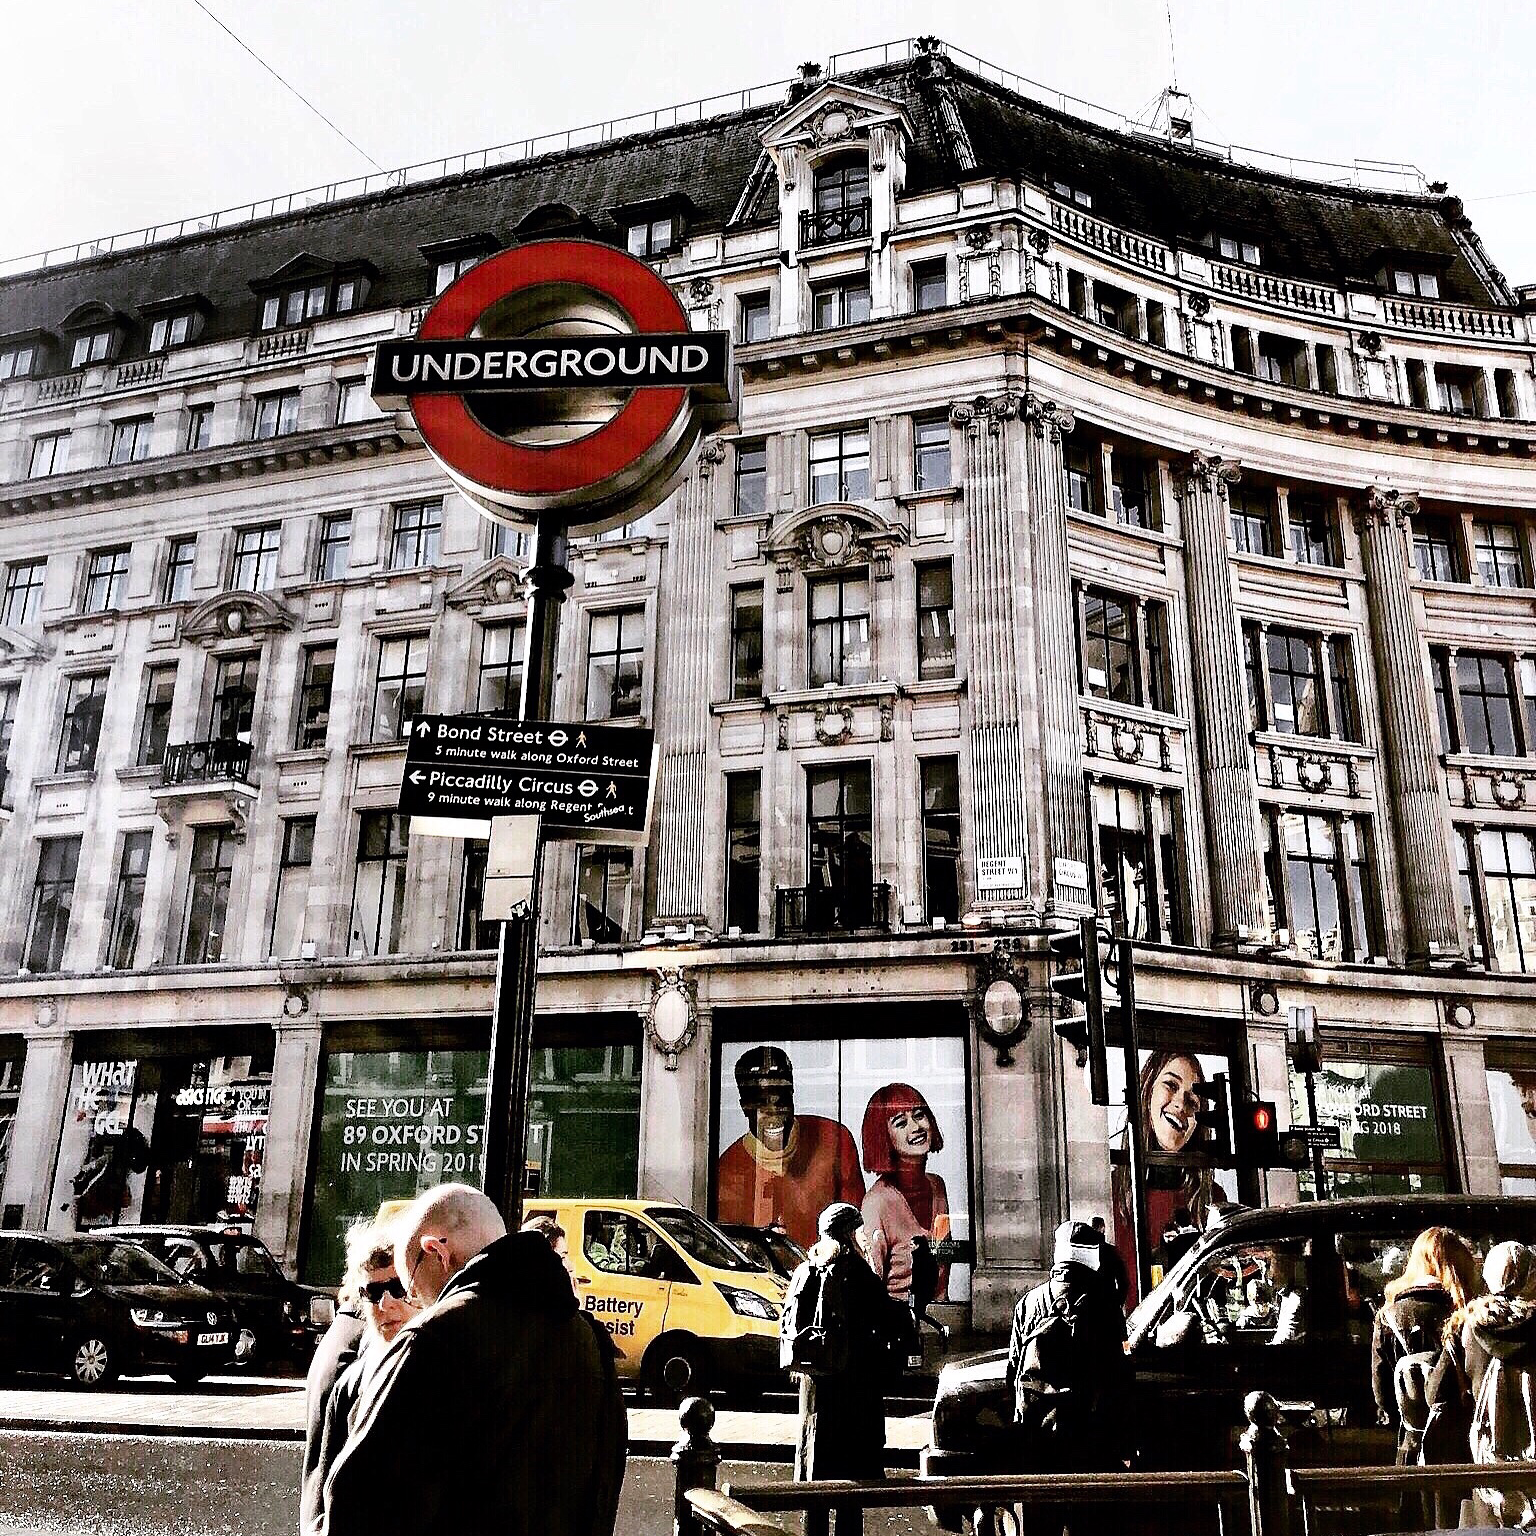 CAPAStudyAbroad_London_Spring2018_From Kelly Allen - Underground Street Sign_square.png